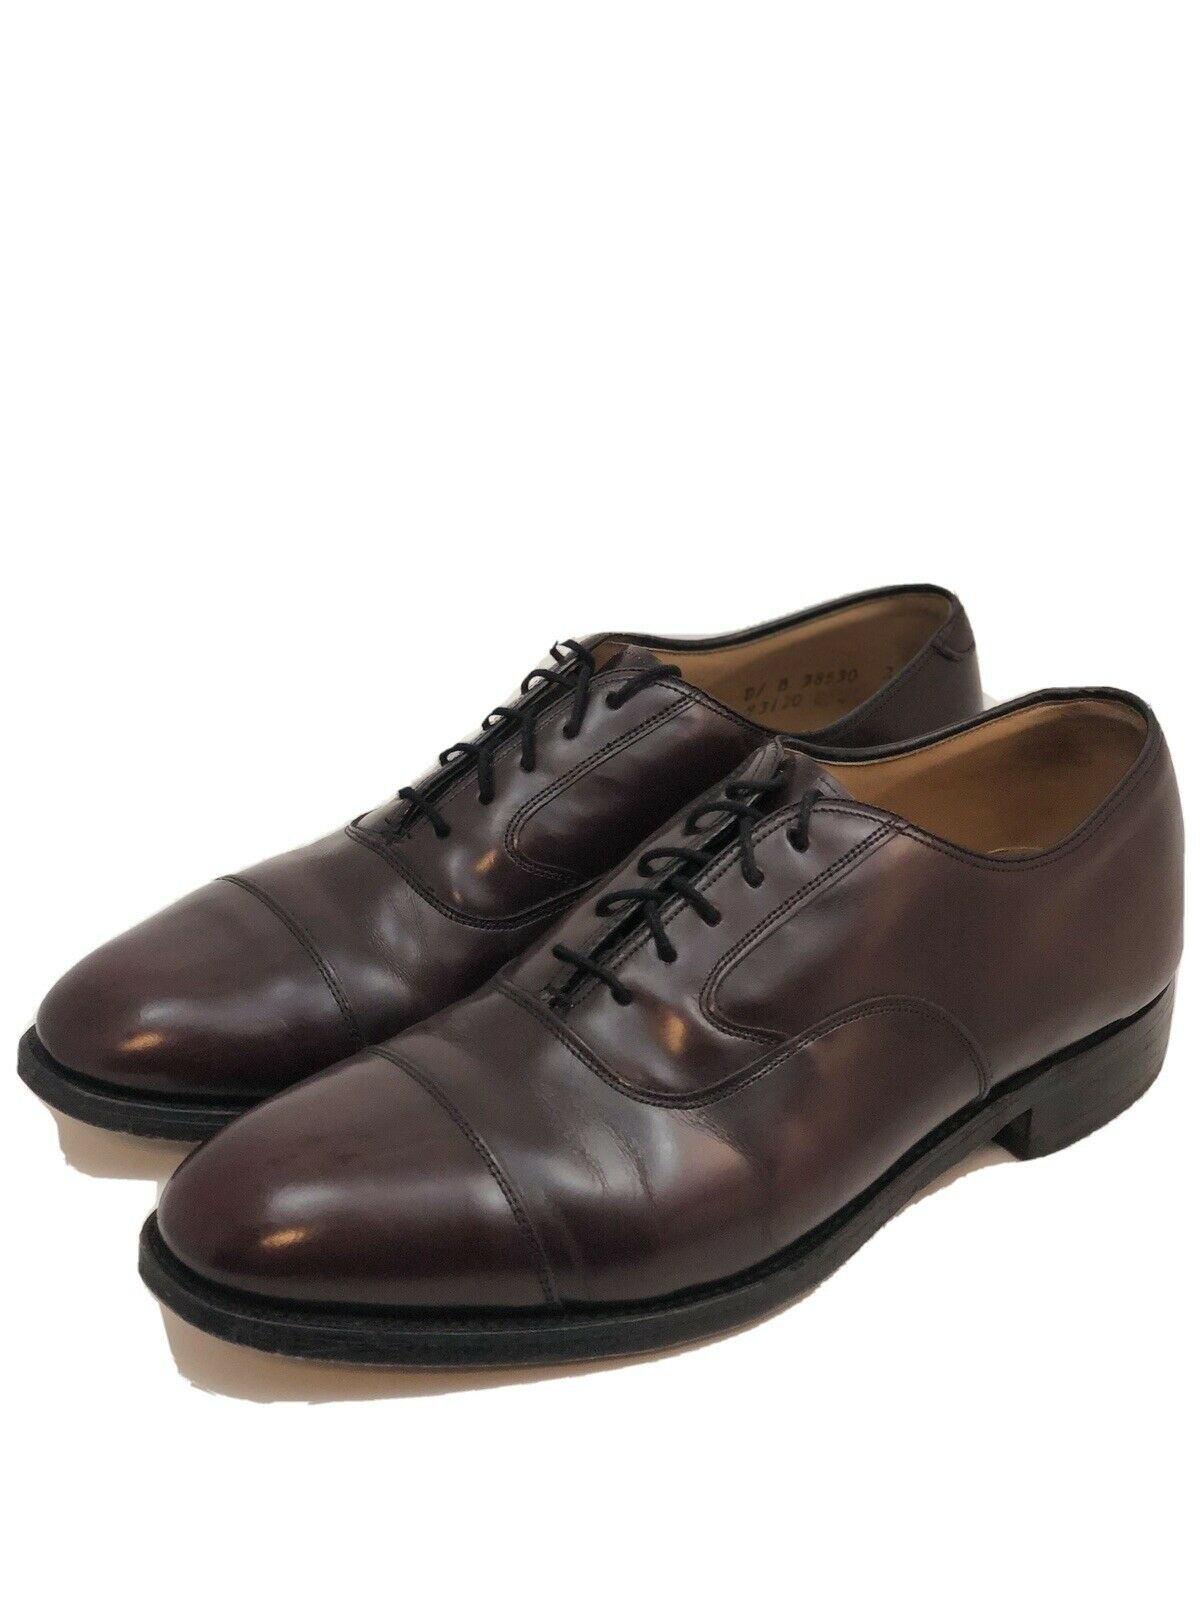 Vintage JOHNSTON MURPHY Limited Oxford Men's Shoes Sz 8.5 Made in USA